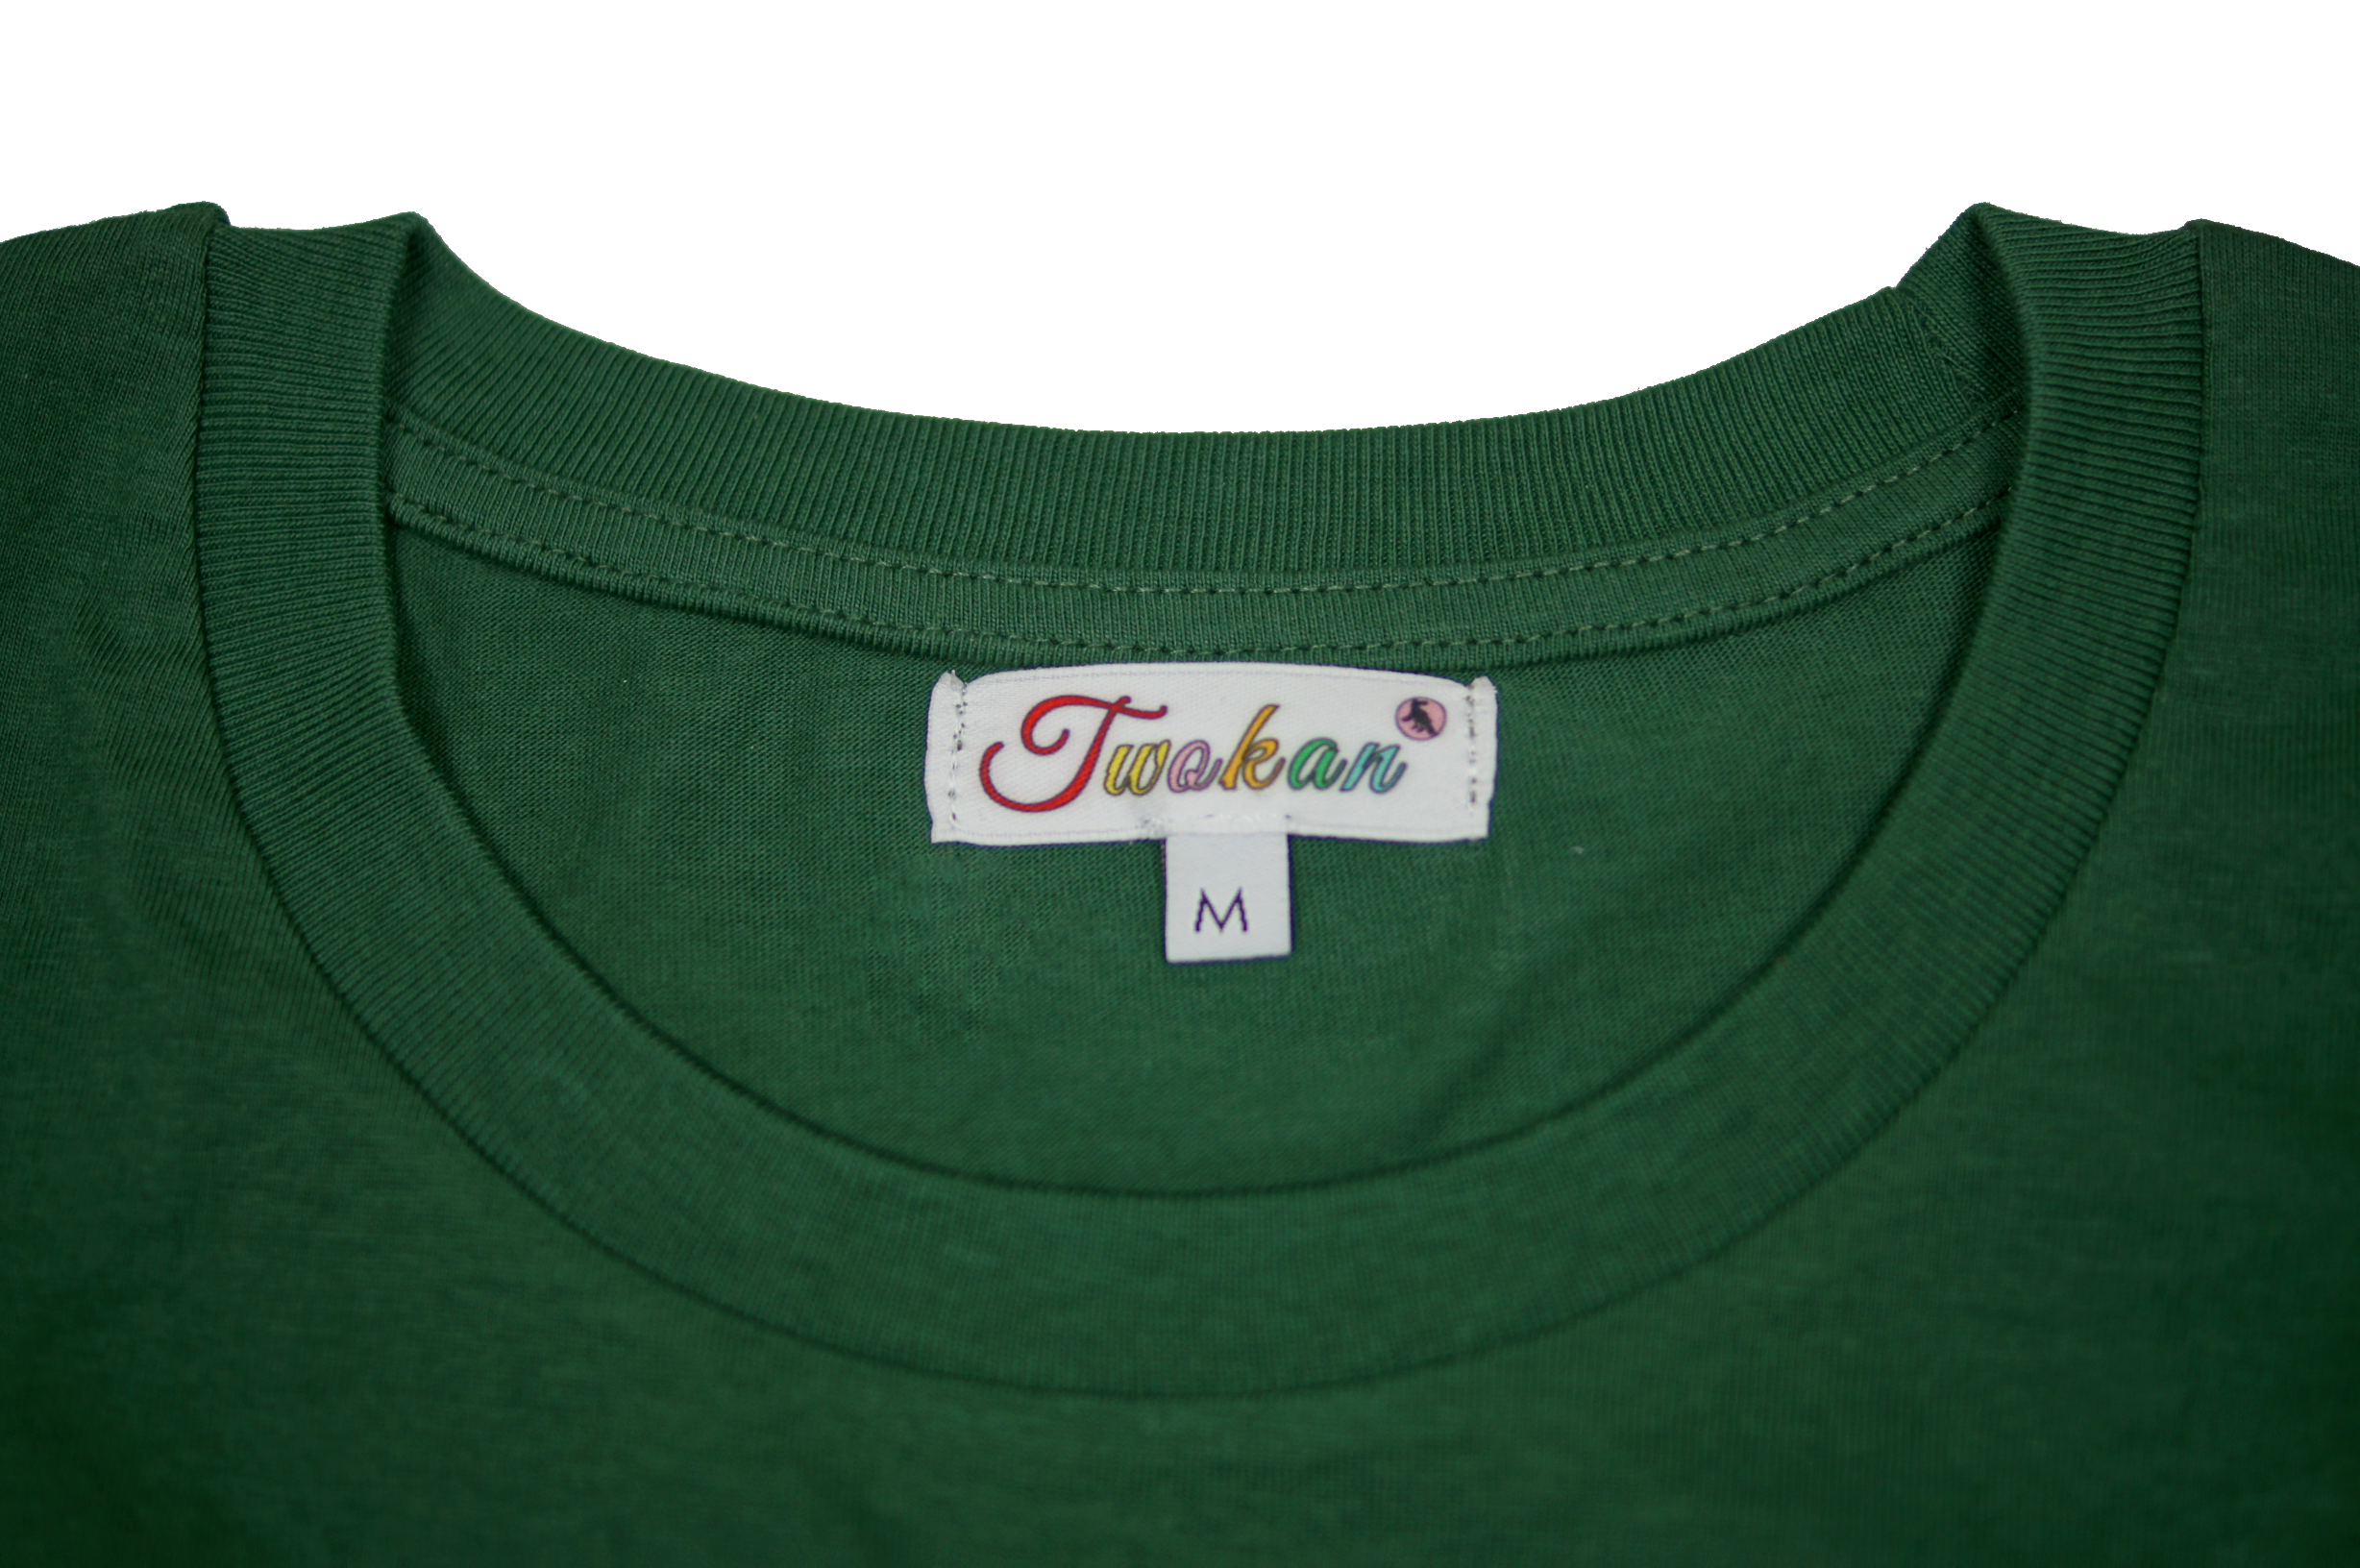 Surfer Twokan Icon Shirt in Golf Green